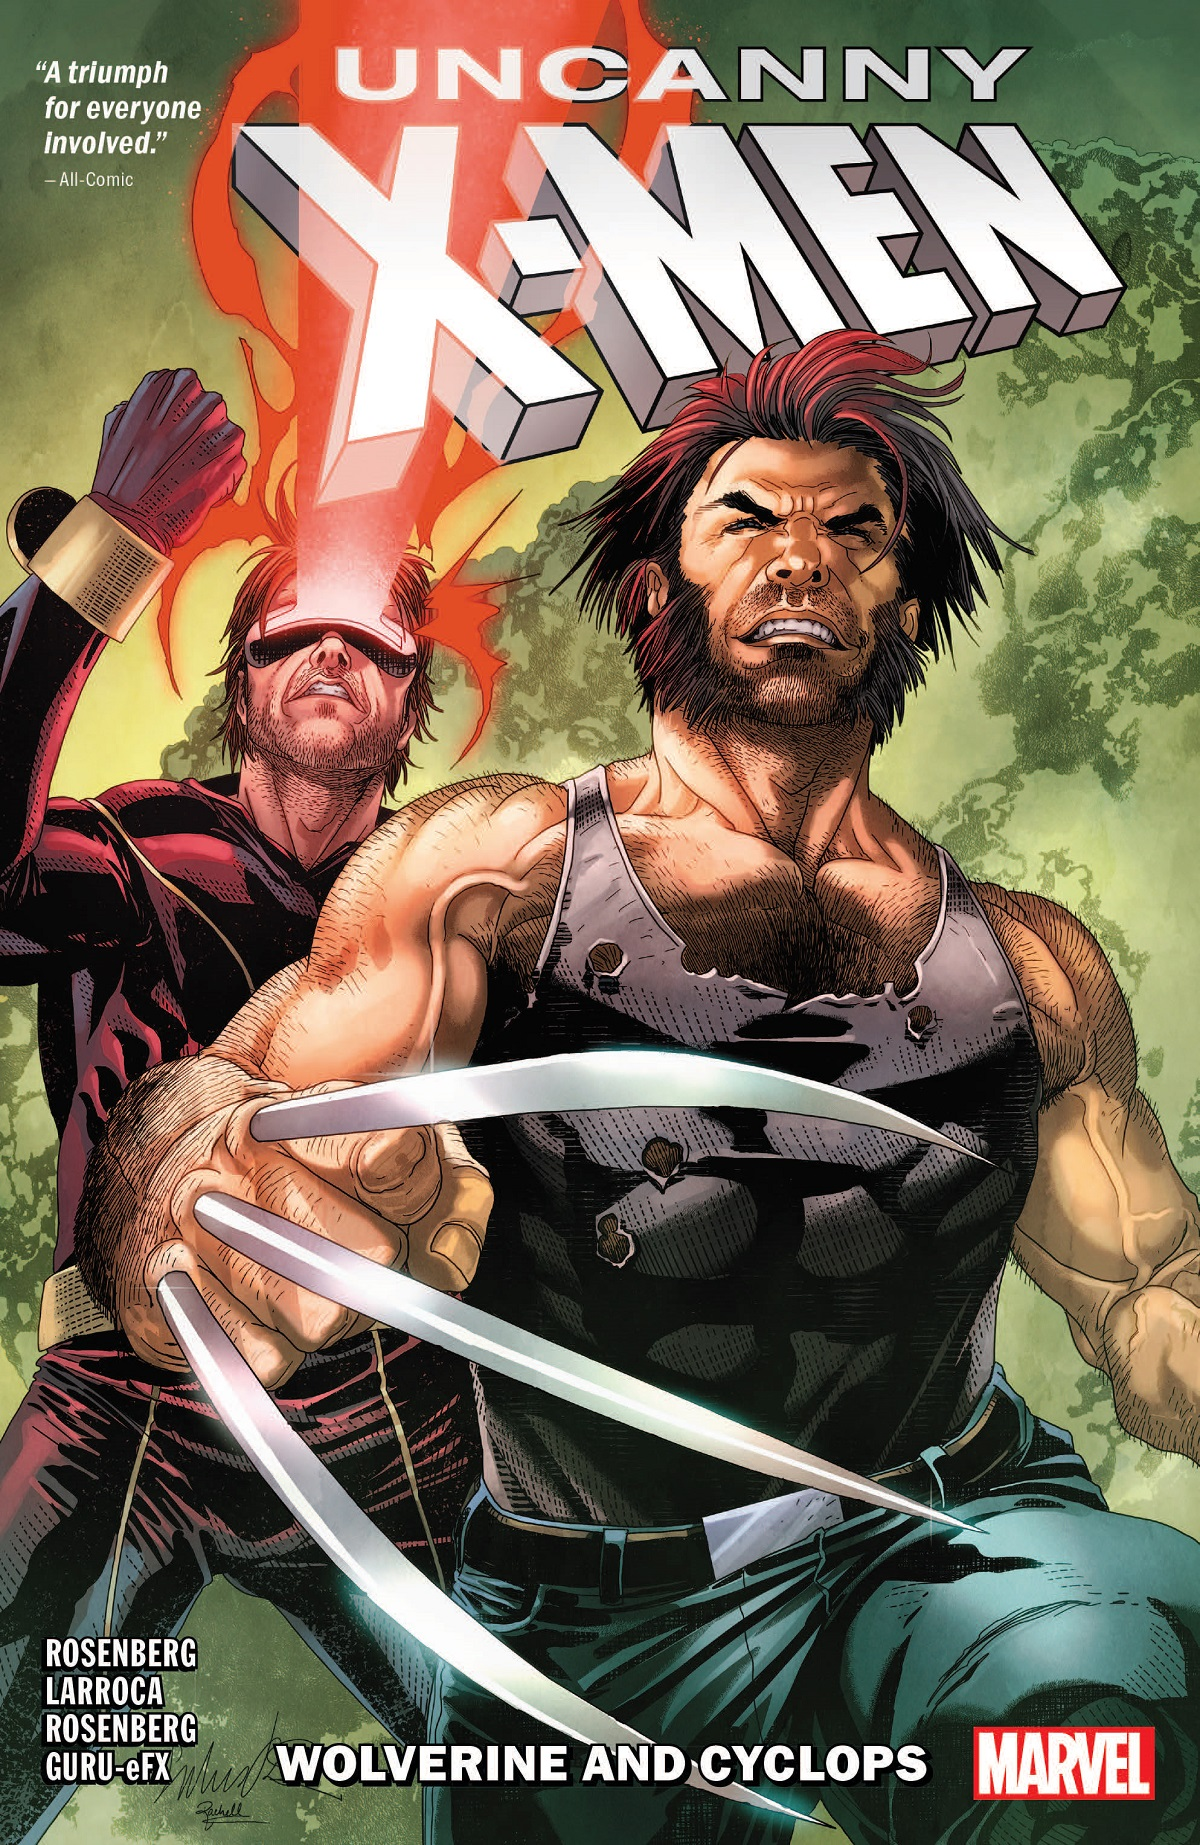 UNCANNY X-MEN: WOLVERINE AND CYCLOPS VOL. 1 TPB (Trade Paperback)